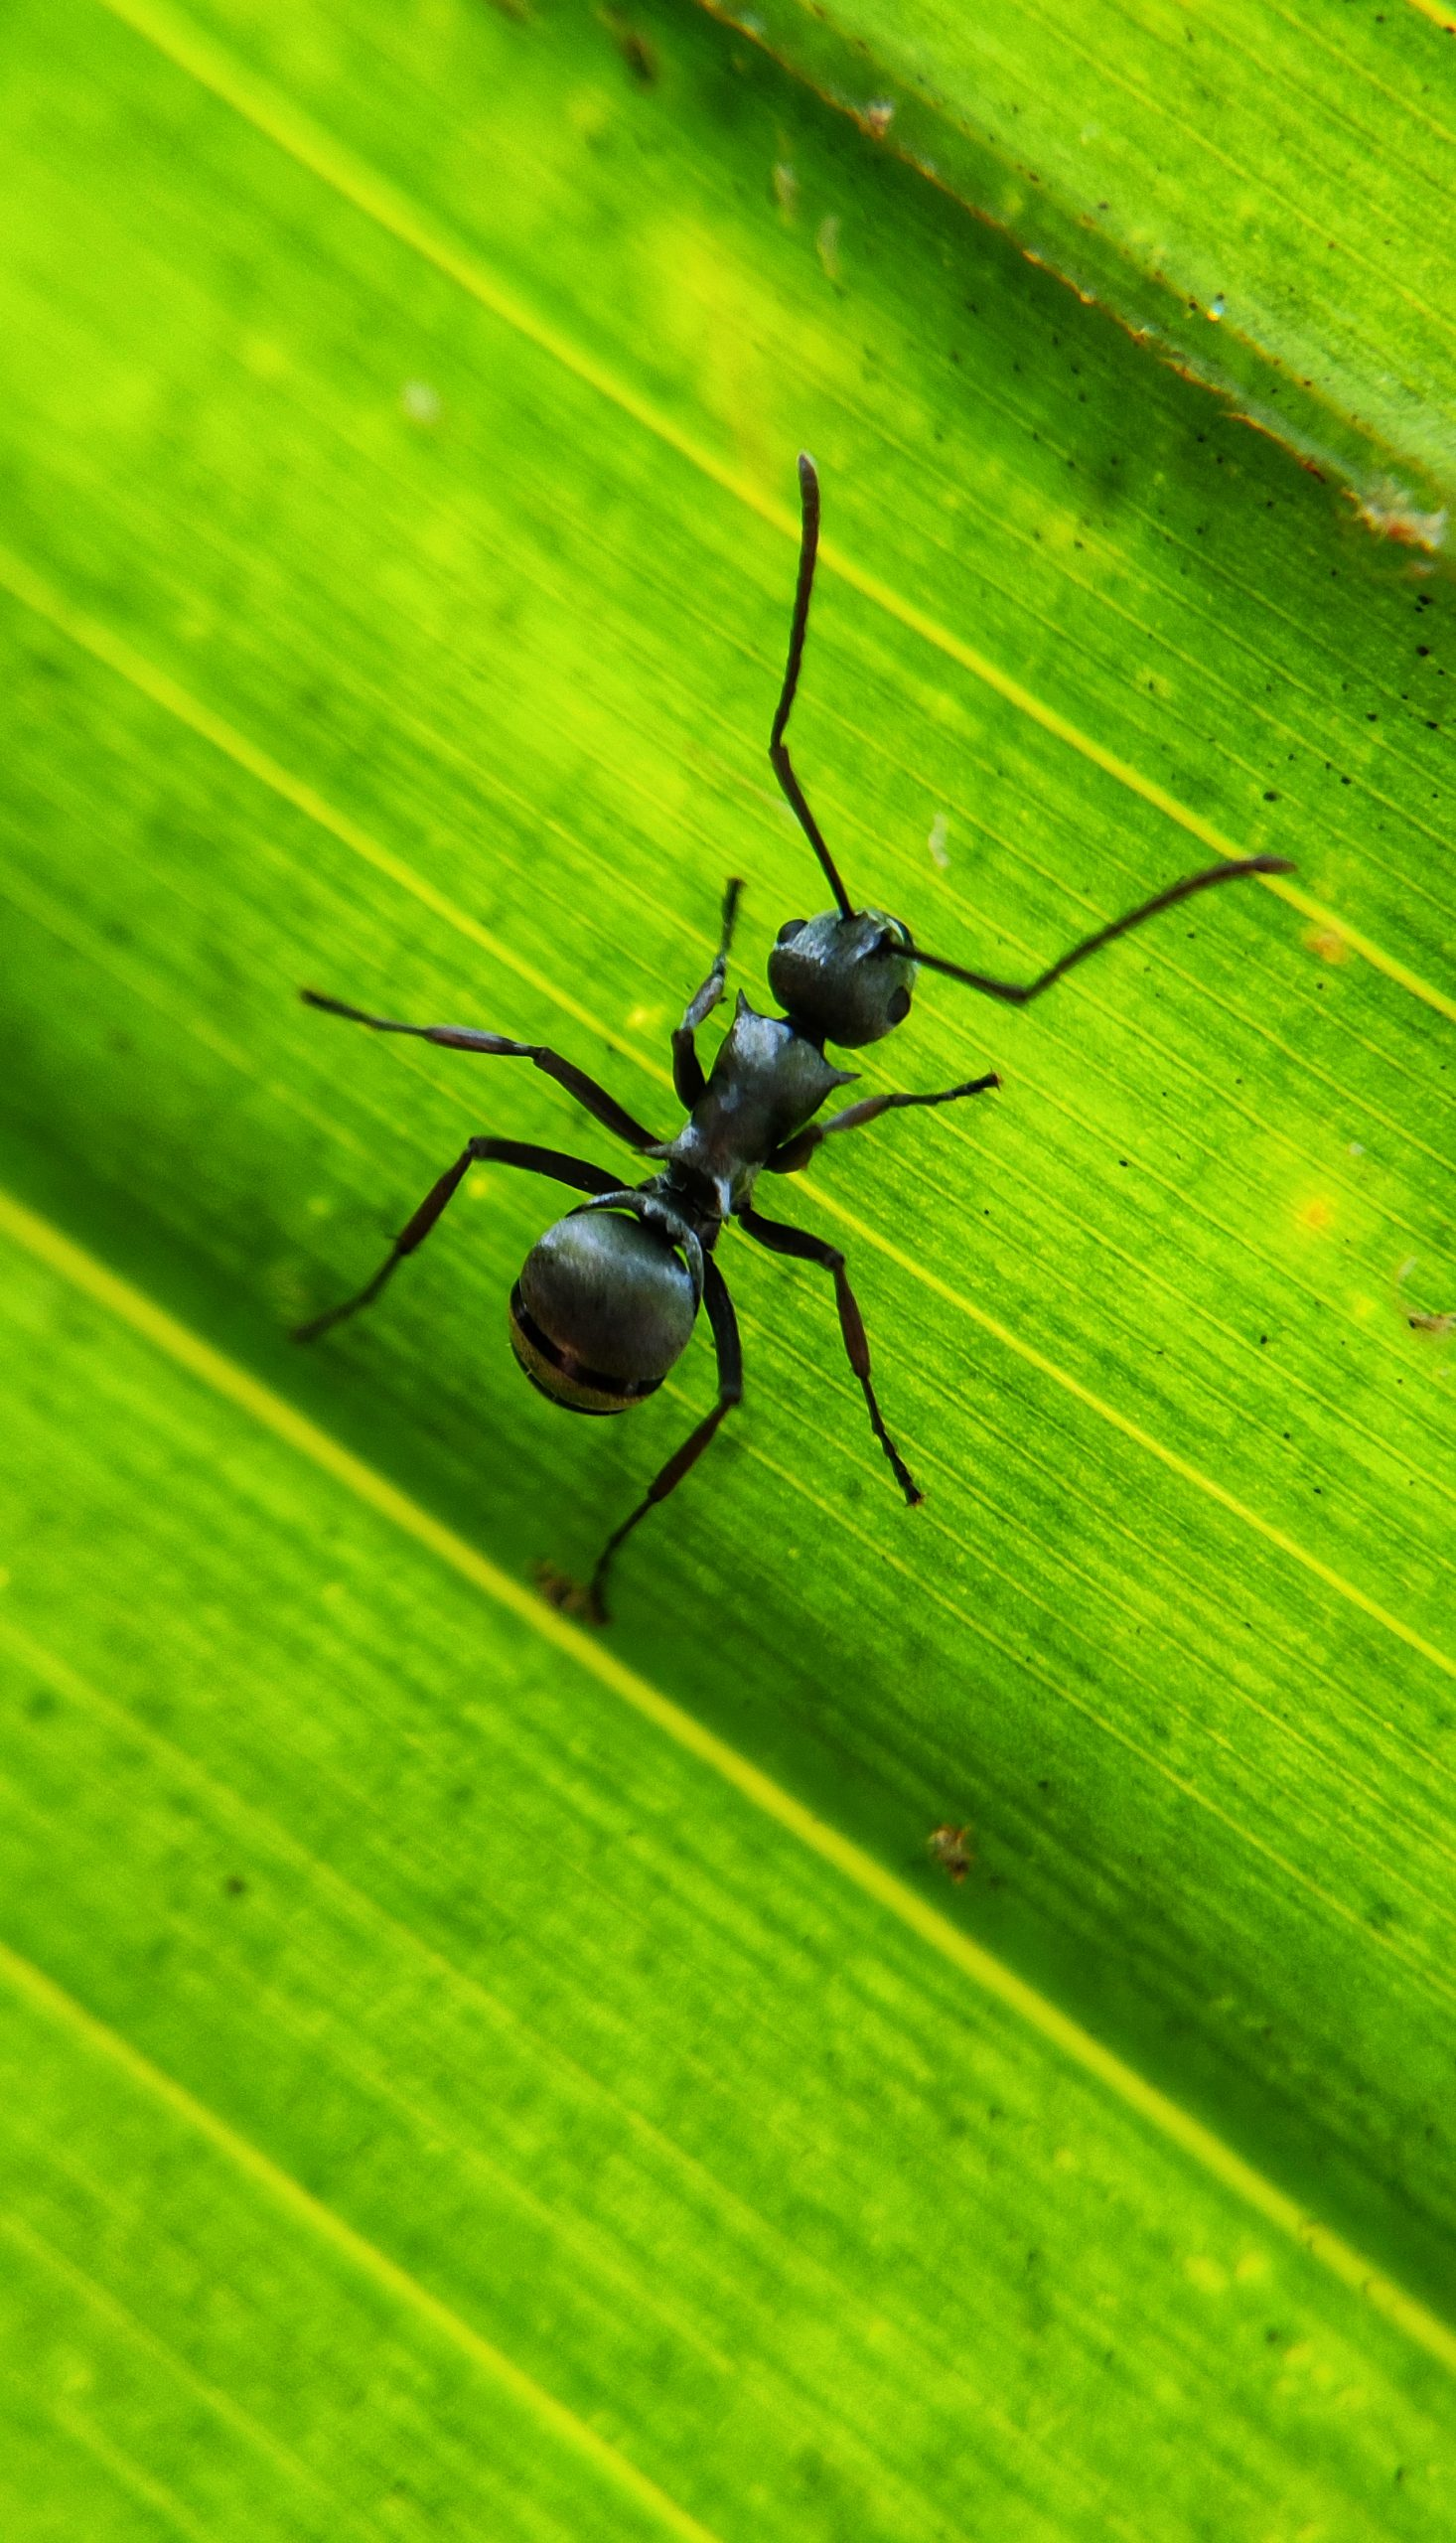 An ant on green leaf